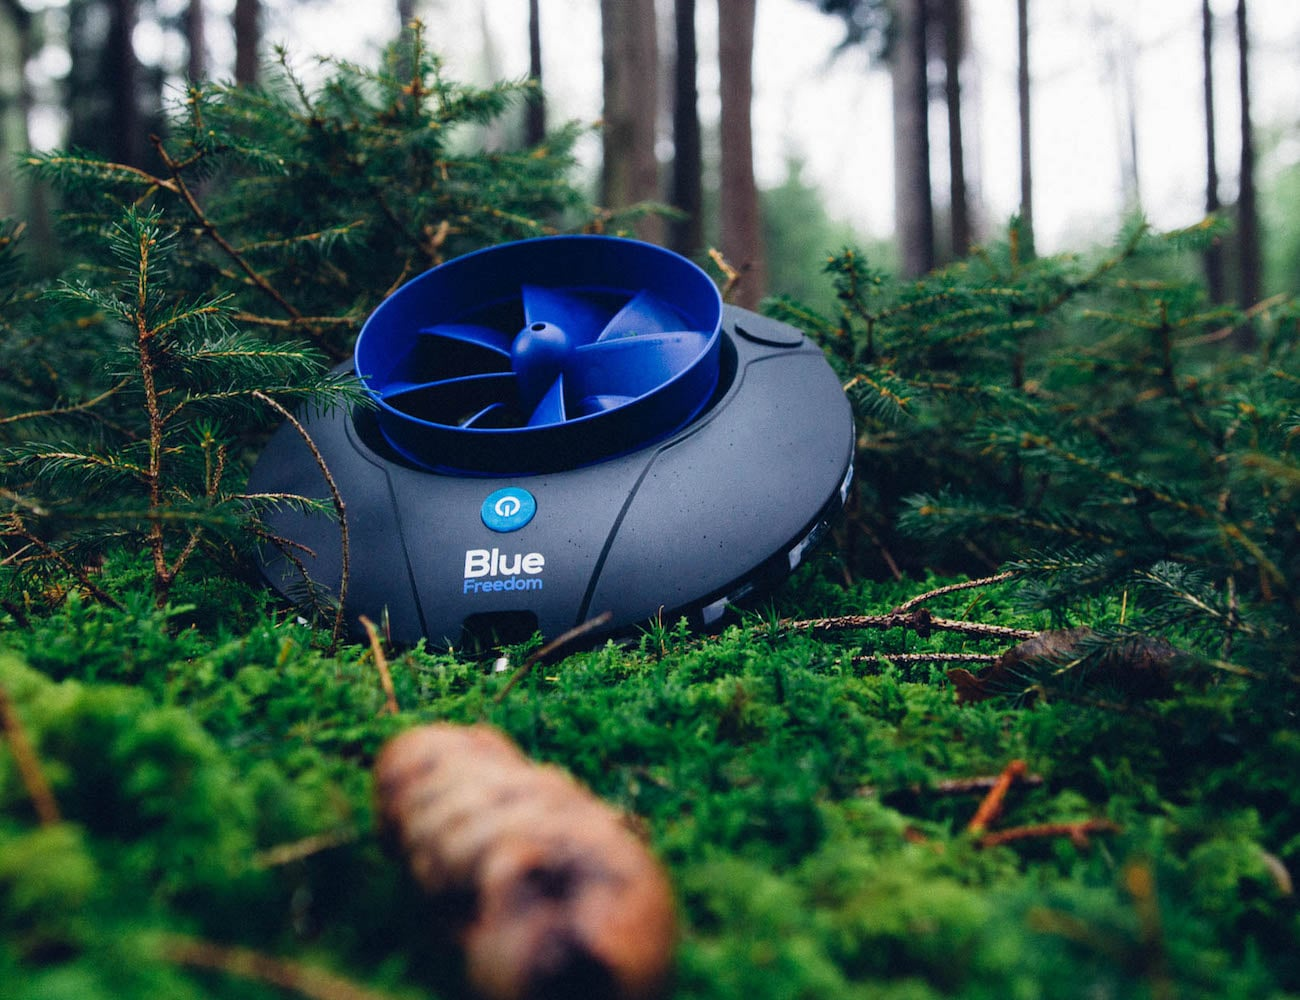 Blue Freedom Portable Hydroelectric Power Plant » Gadget Flow